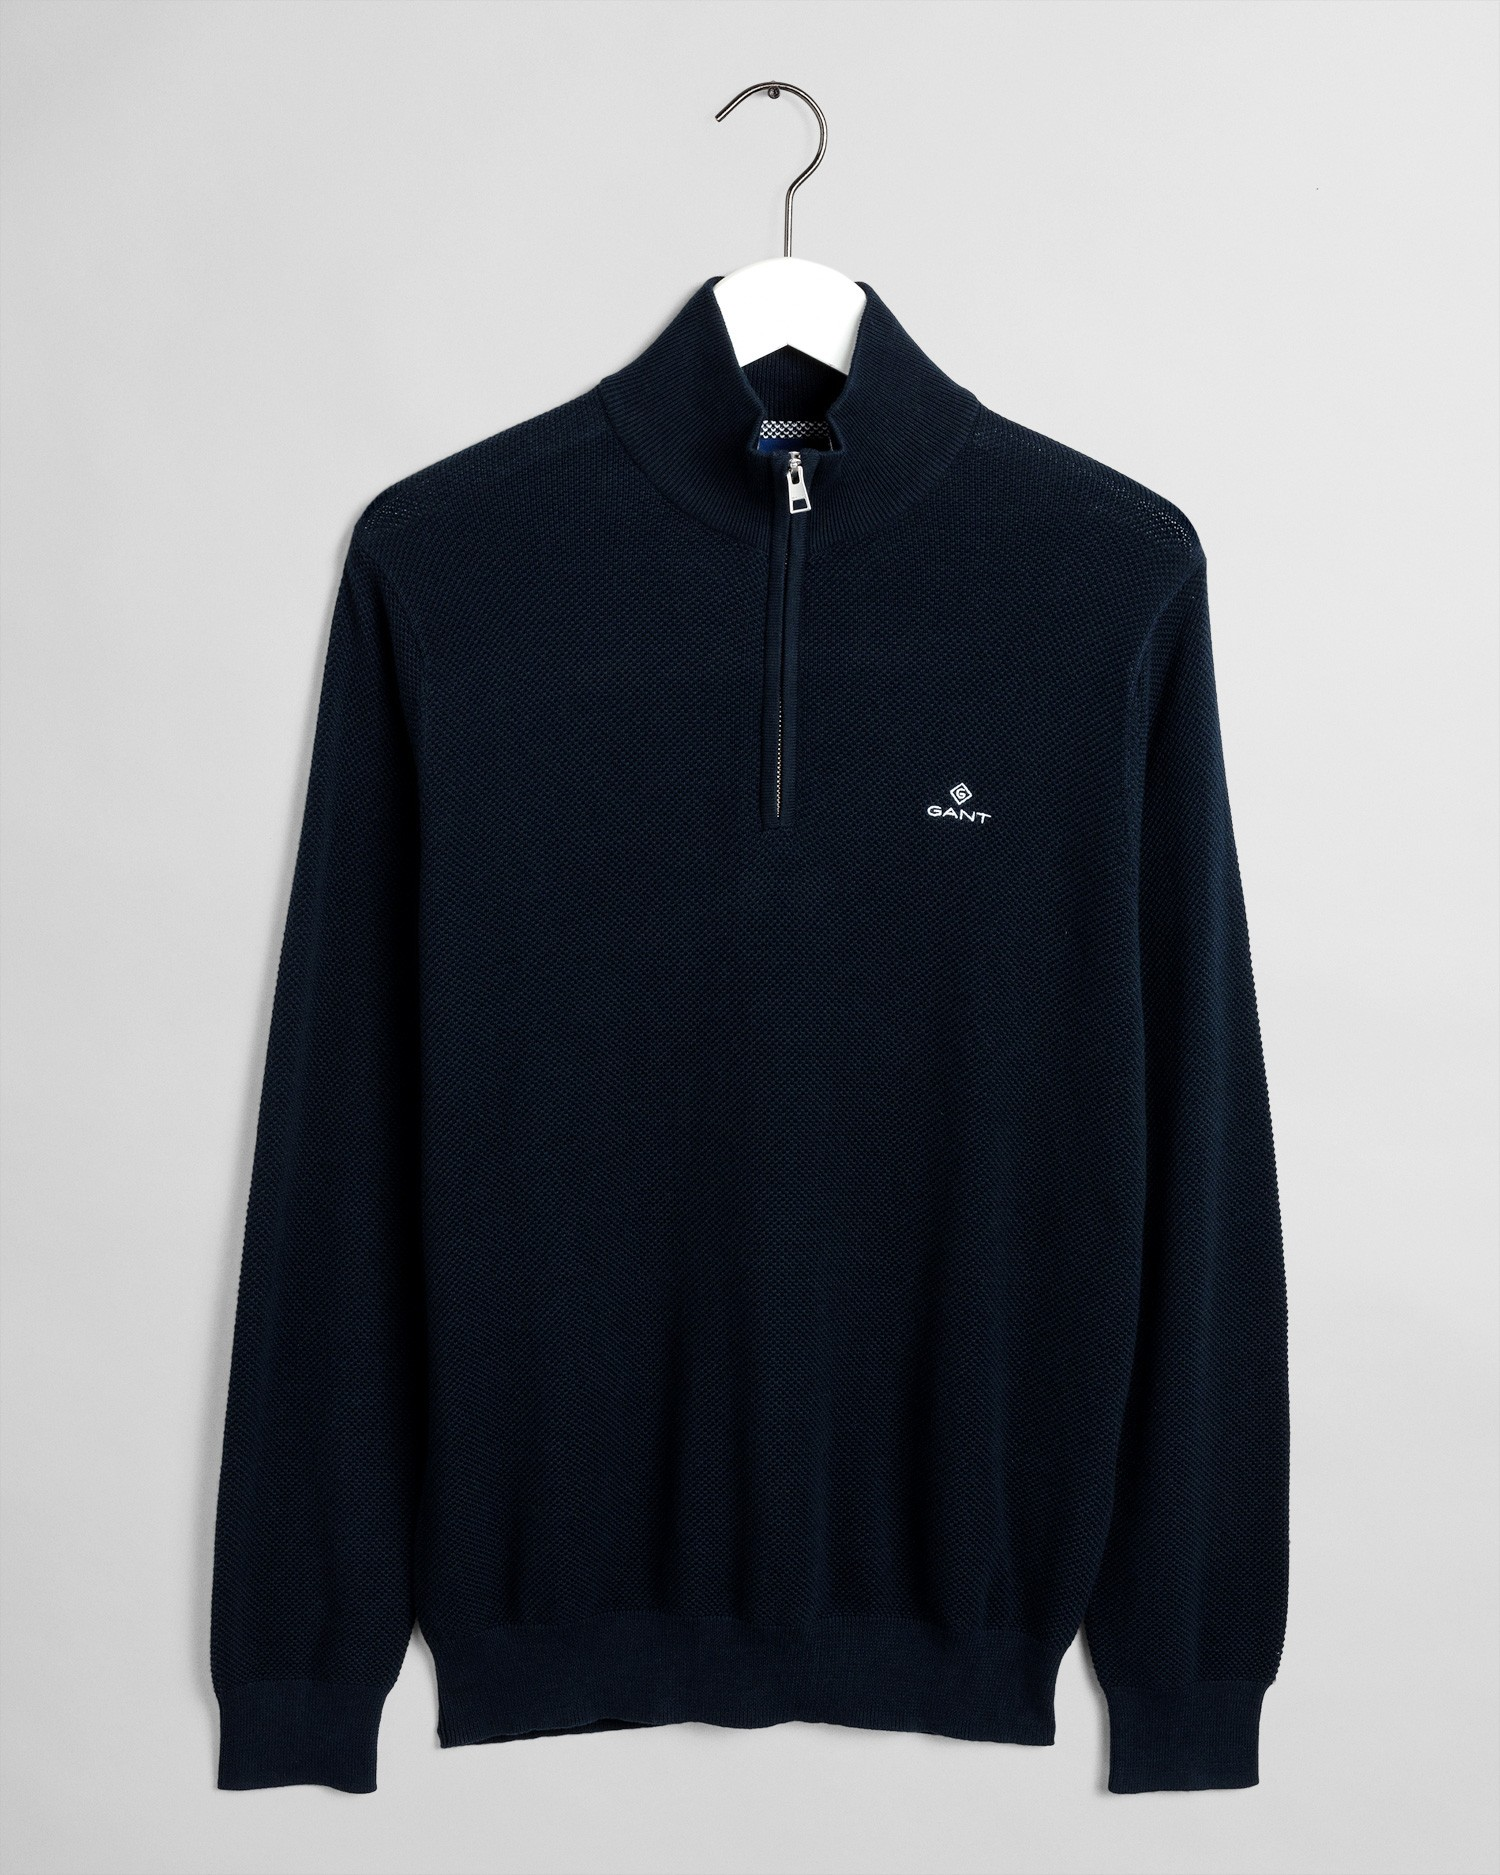 GANT Men's Cotton Pique Half Zip Sweater - 8030523